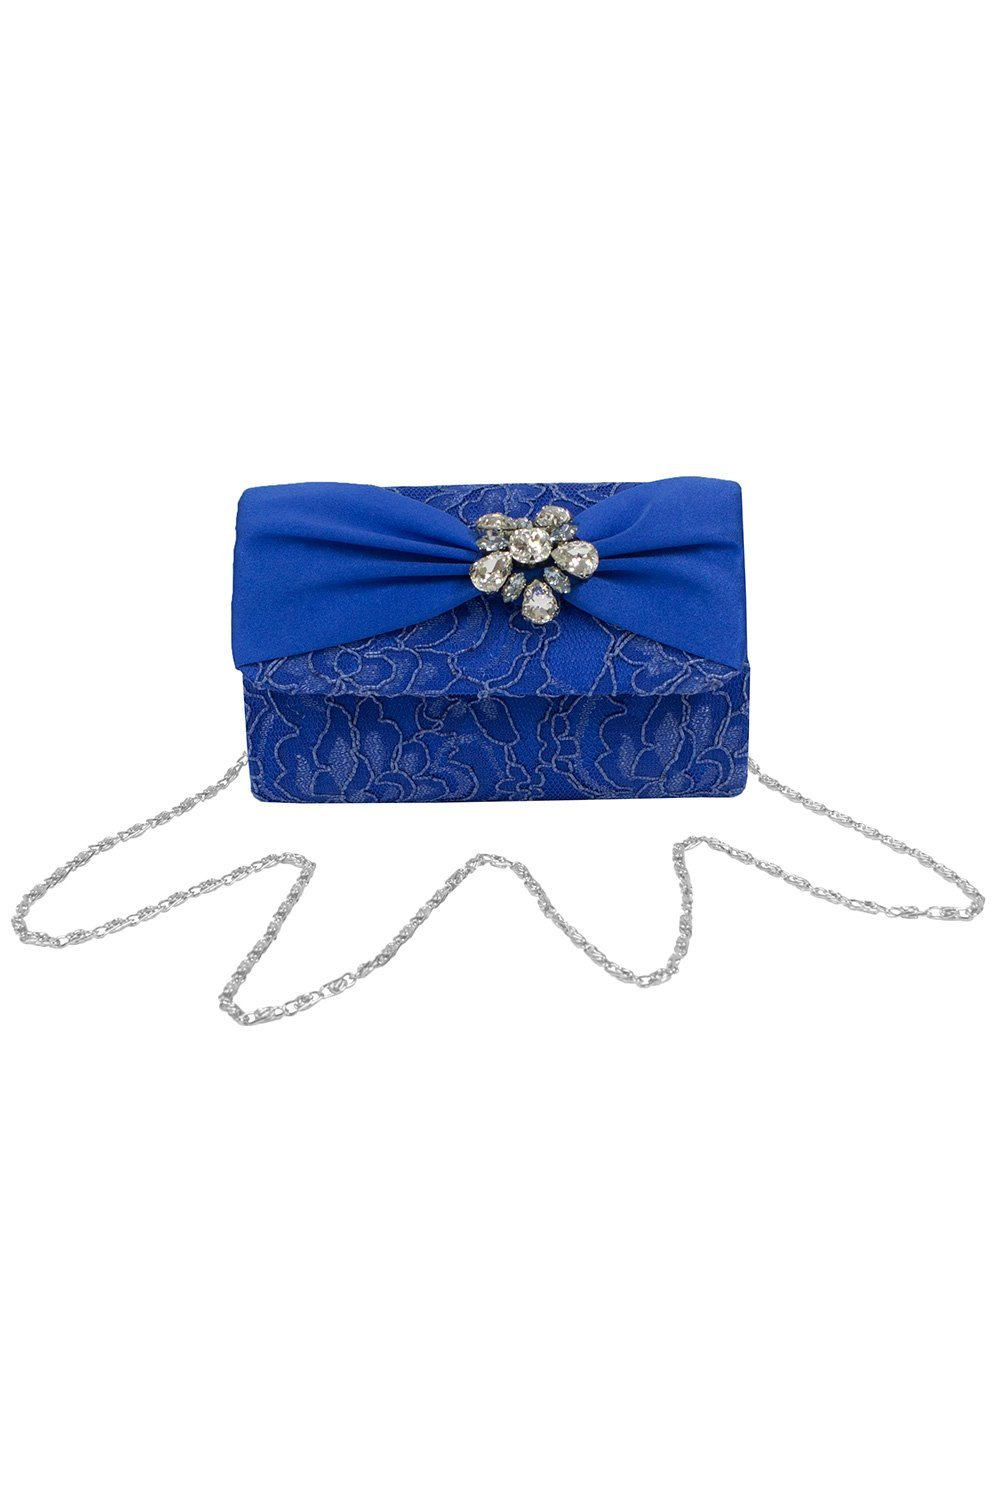 Navy Jewel Clustered Clutch